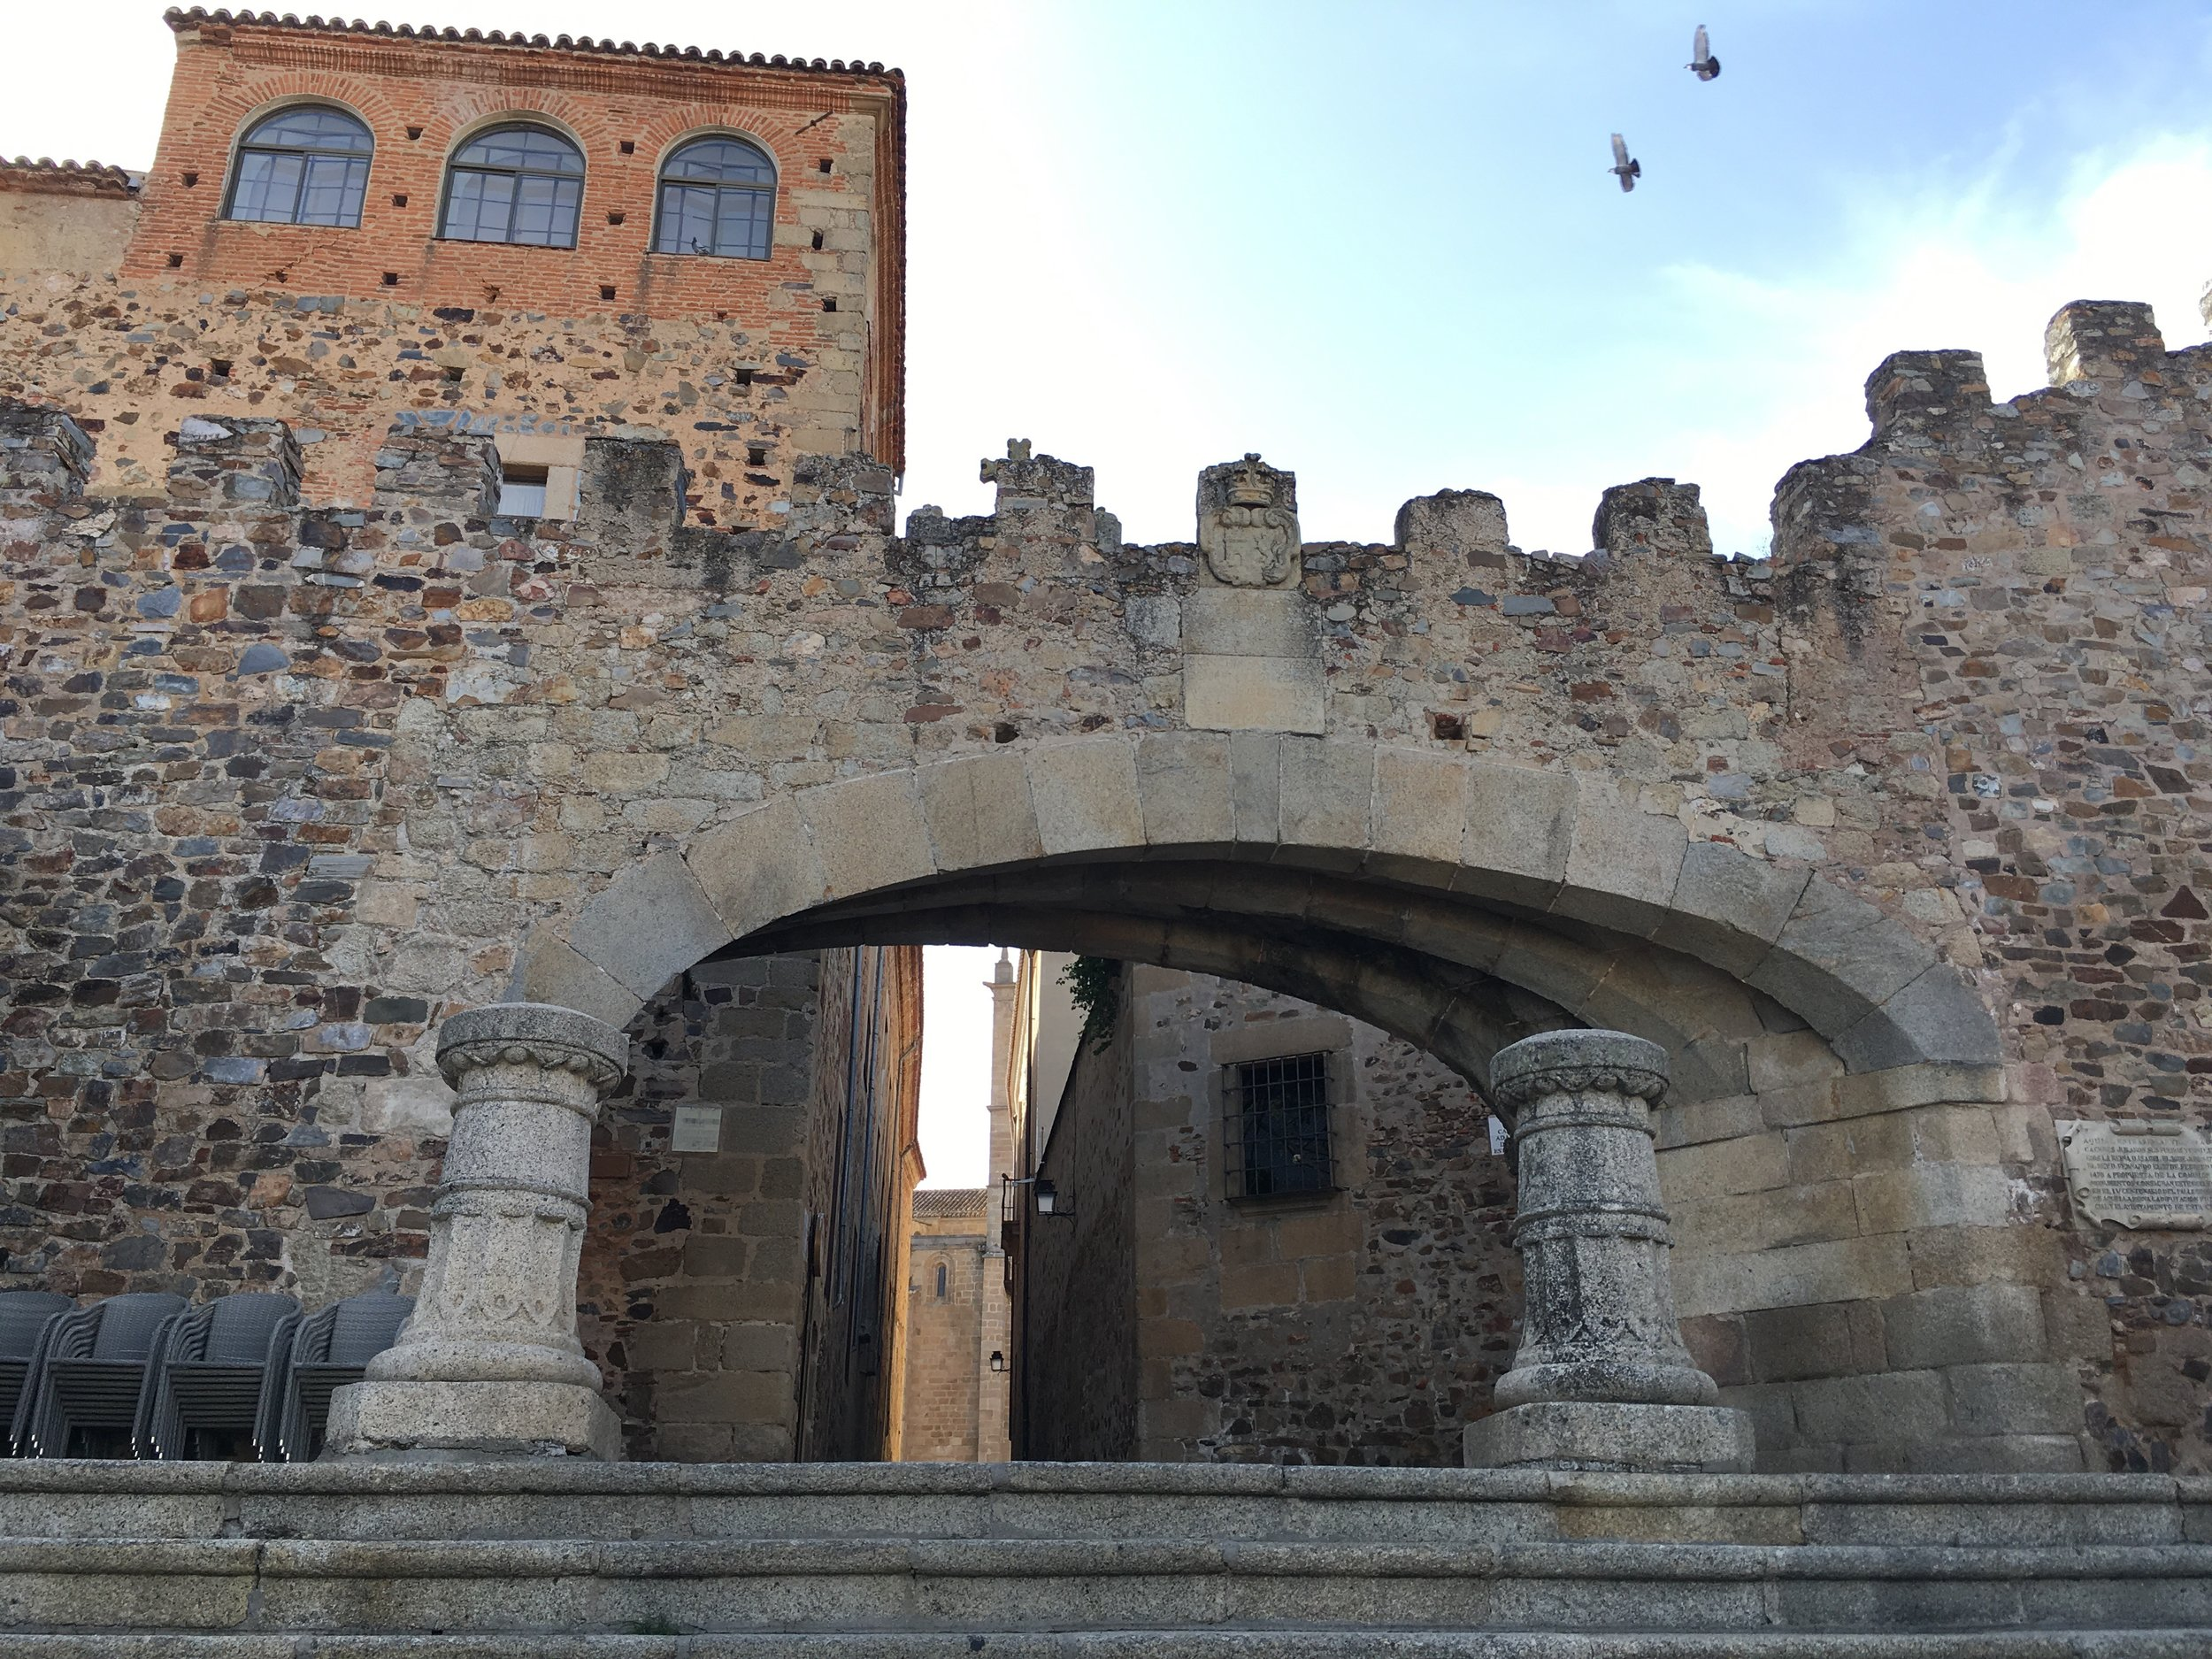 Entering the city walls of Caceres takes us back to medieval times.